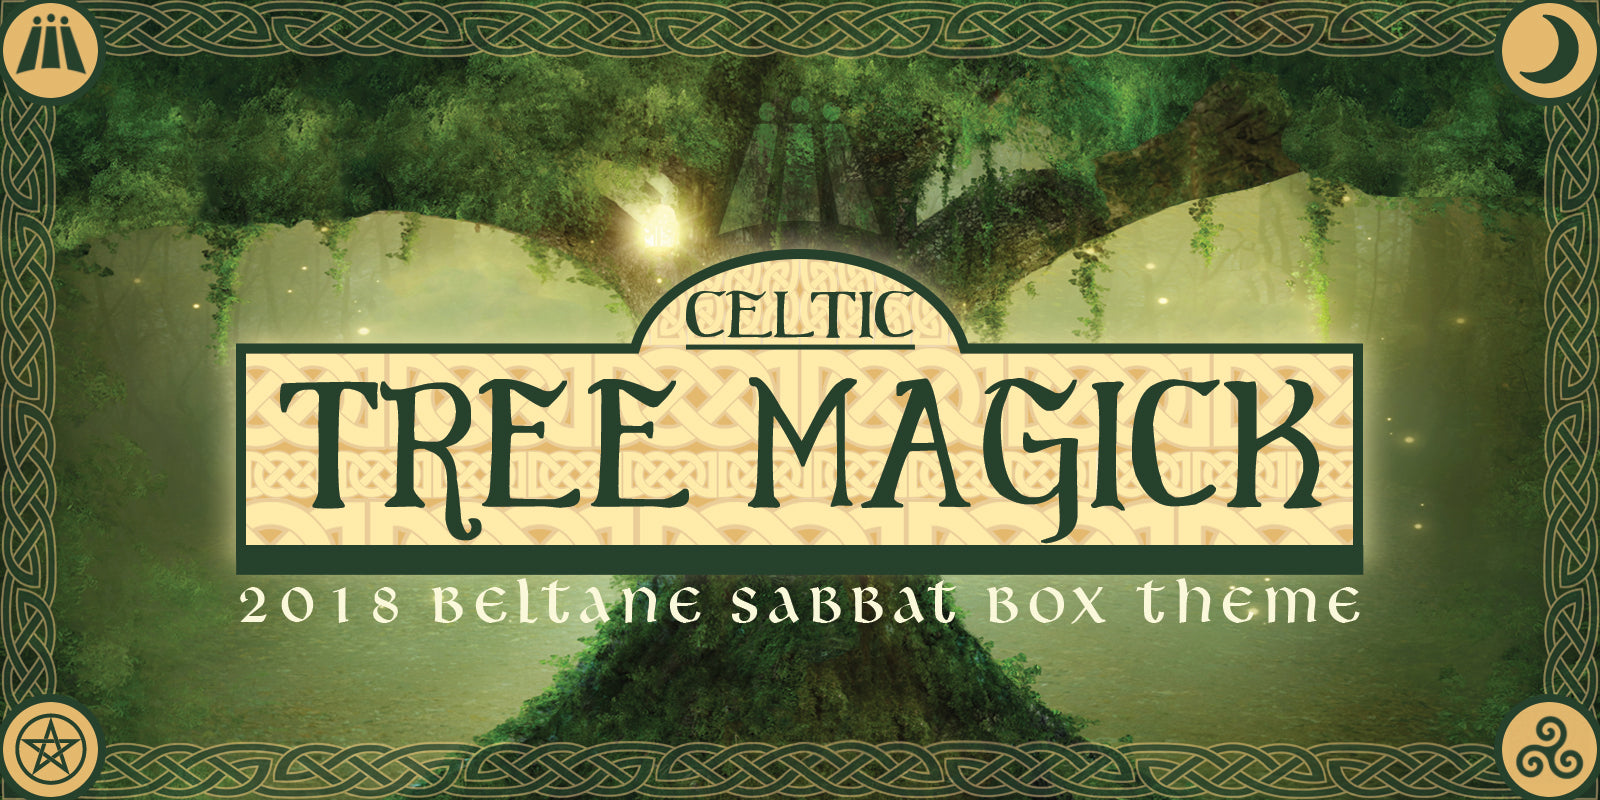 Celtic Tree Magick - Beltane Sabbat Box Theme